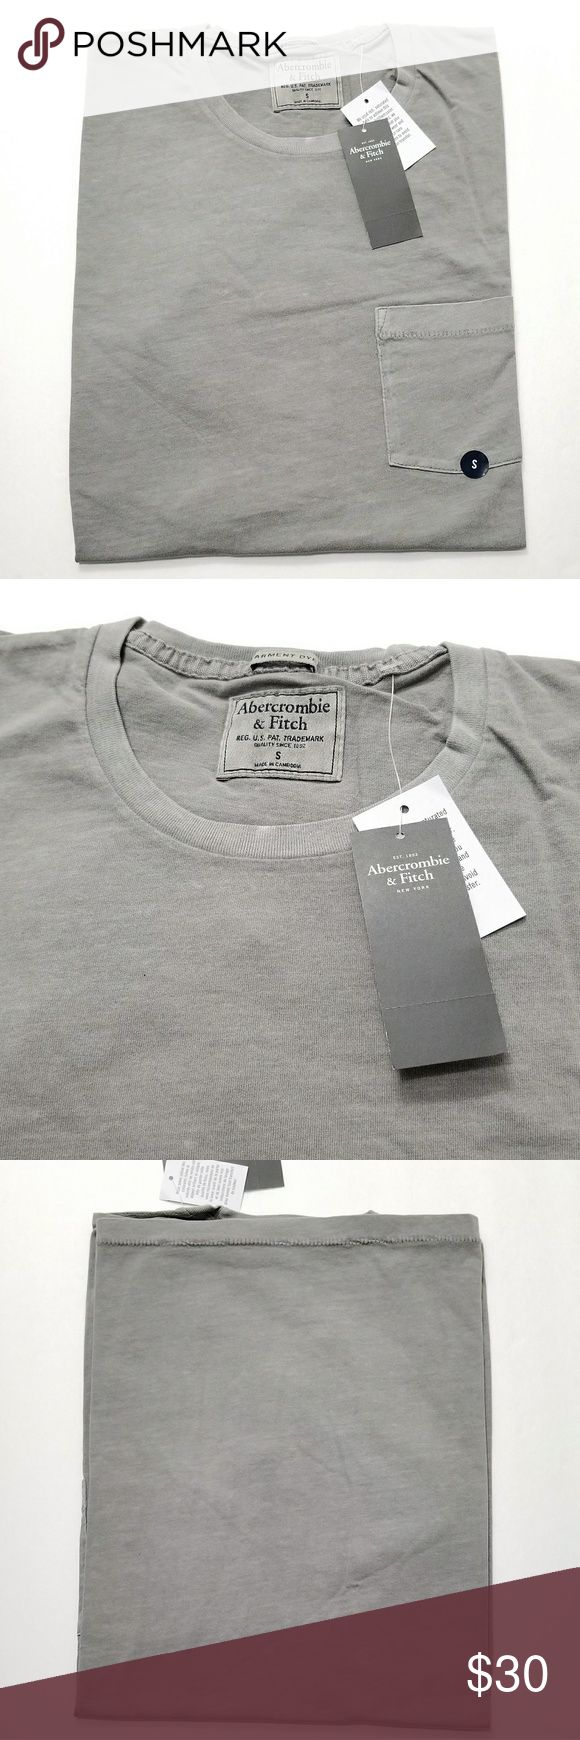 👕Abercrombie And Fitch Grey Classic T-shirt Perfect Valentine's Gift Brand New Grey Classic Mens T-shirt Size Small. No flaws All Sales Final. Raise Question Before Purchase. Please bundle or reasonable offer. Free random gift! Fast Shipping! Abercrombie & Fitch Shirts Tees - Short Sleeve